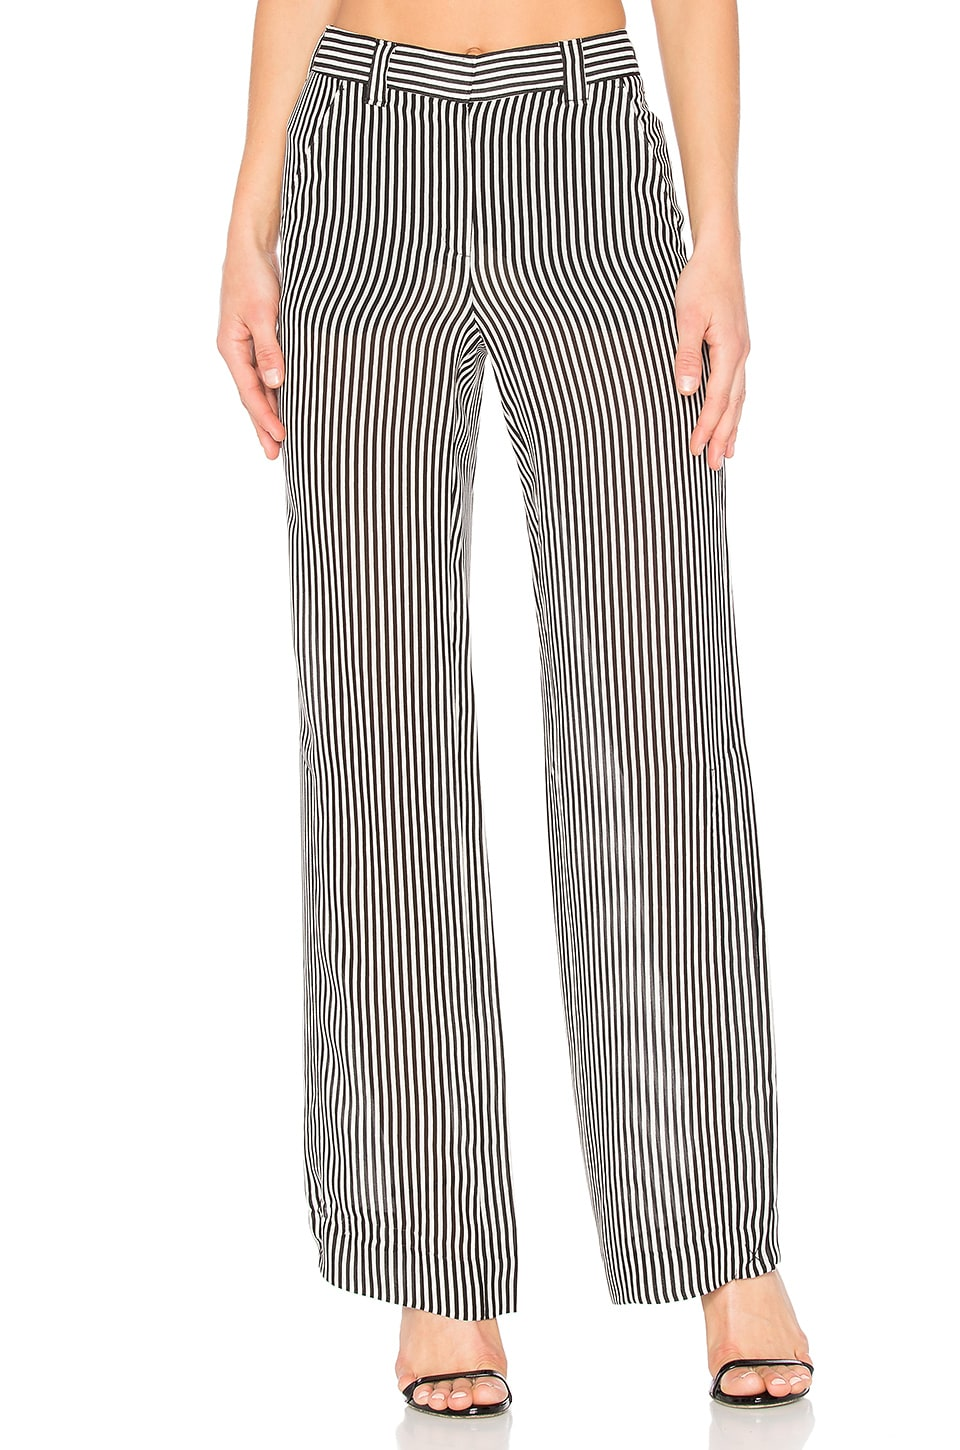 A.L.C. Miles Pant in Black & White